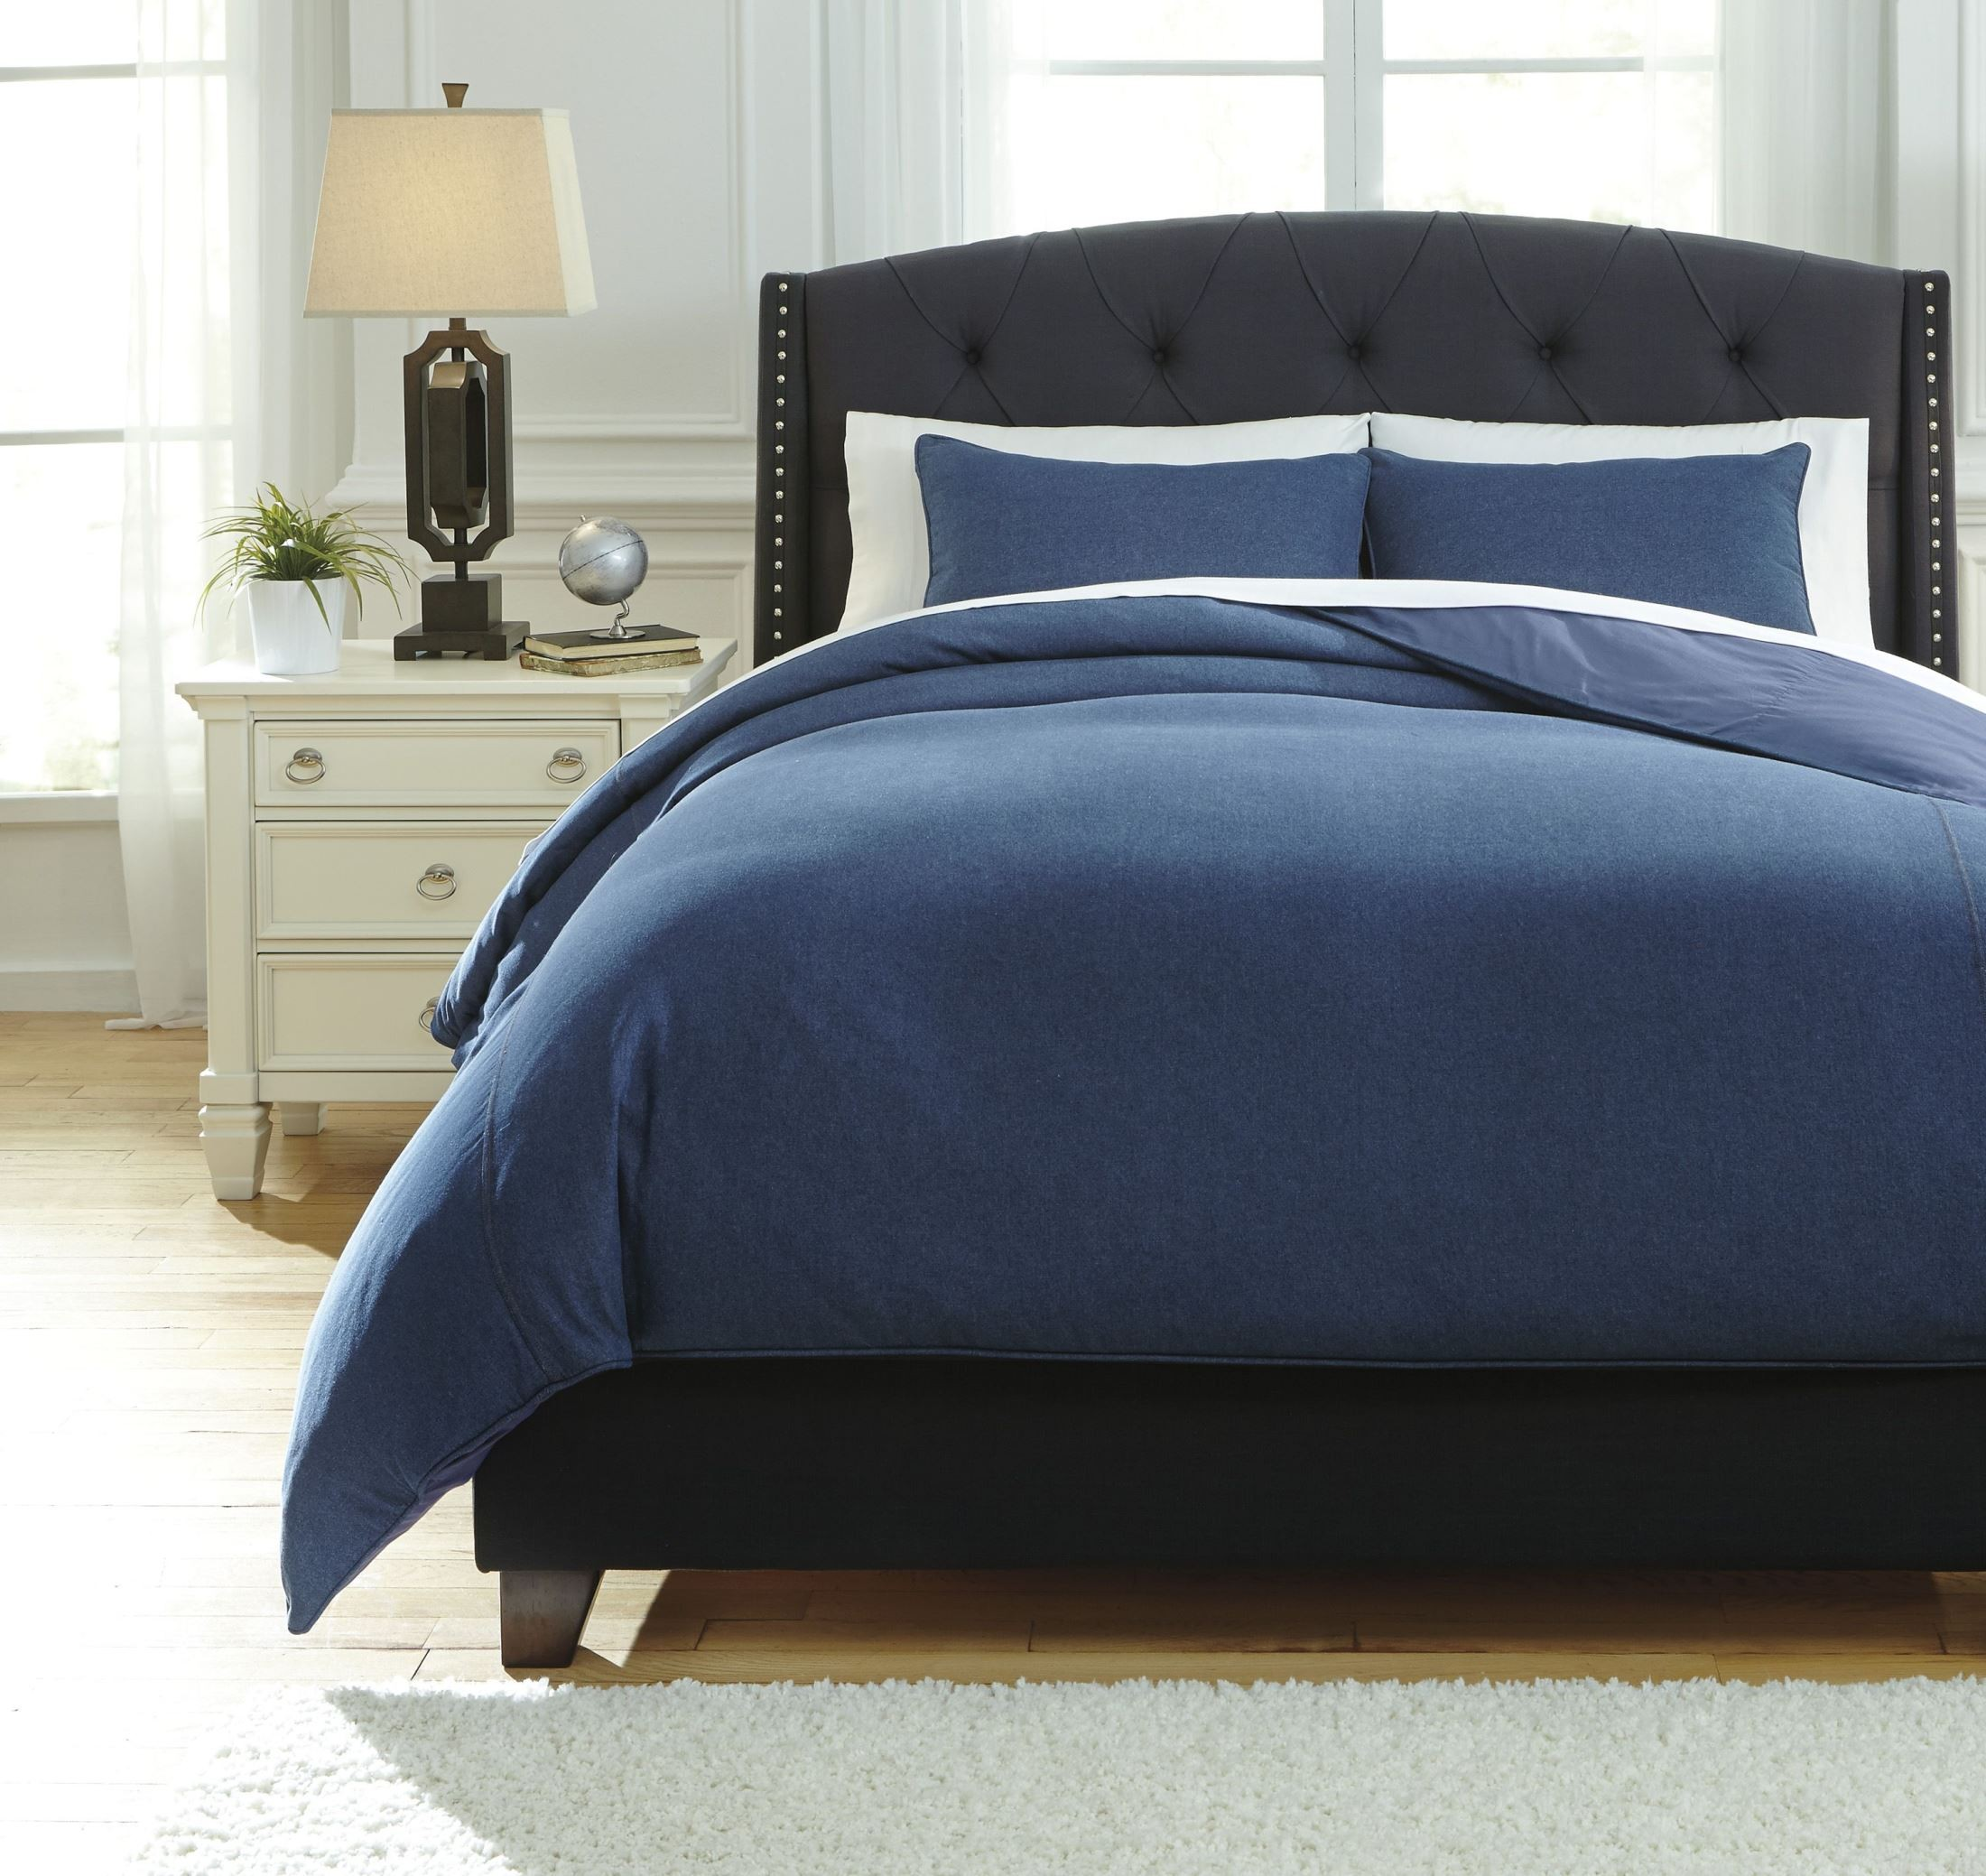 Sensu Denim Queen Duvet Cover Set From Ashley Q742003q